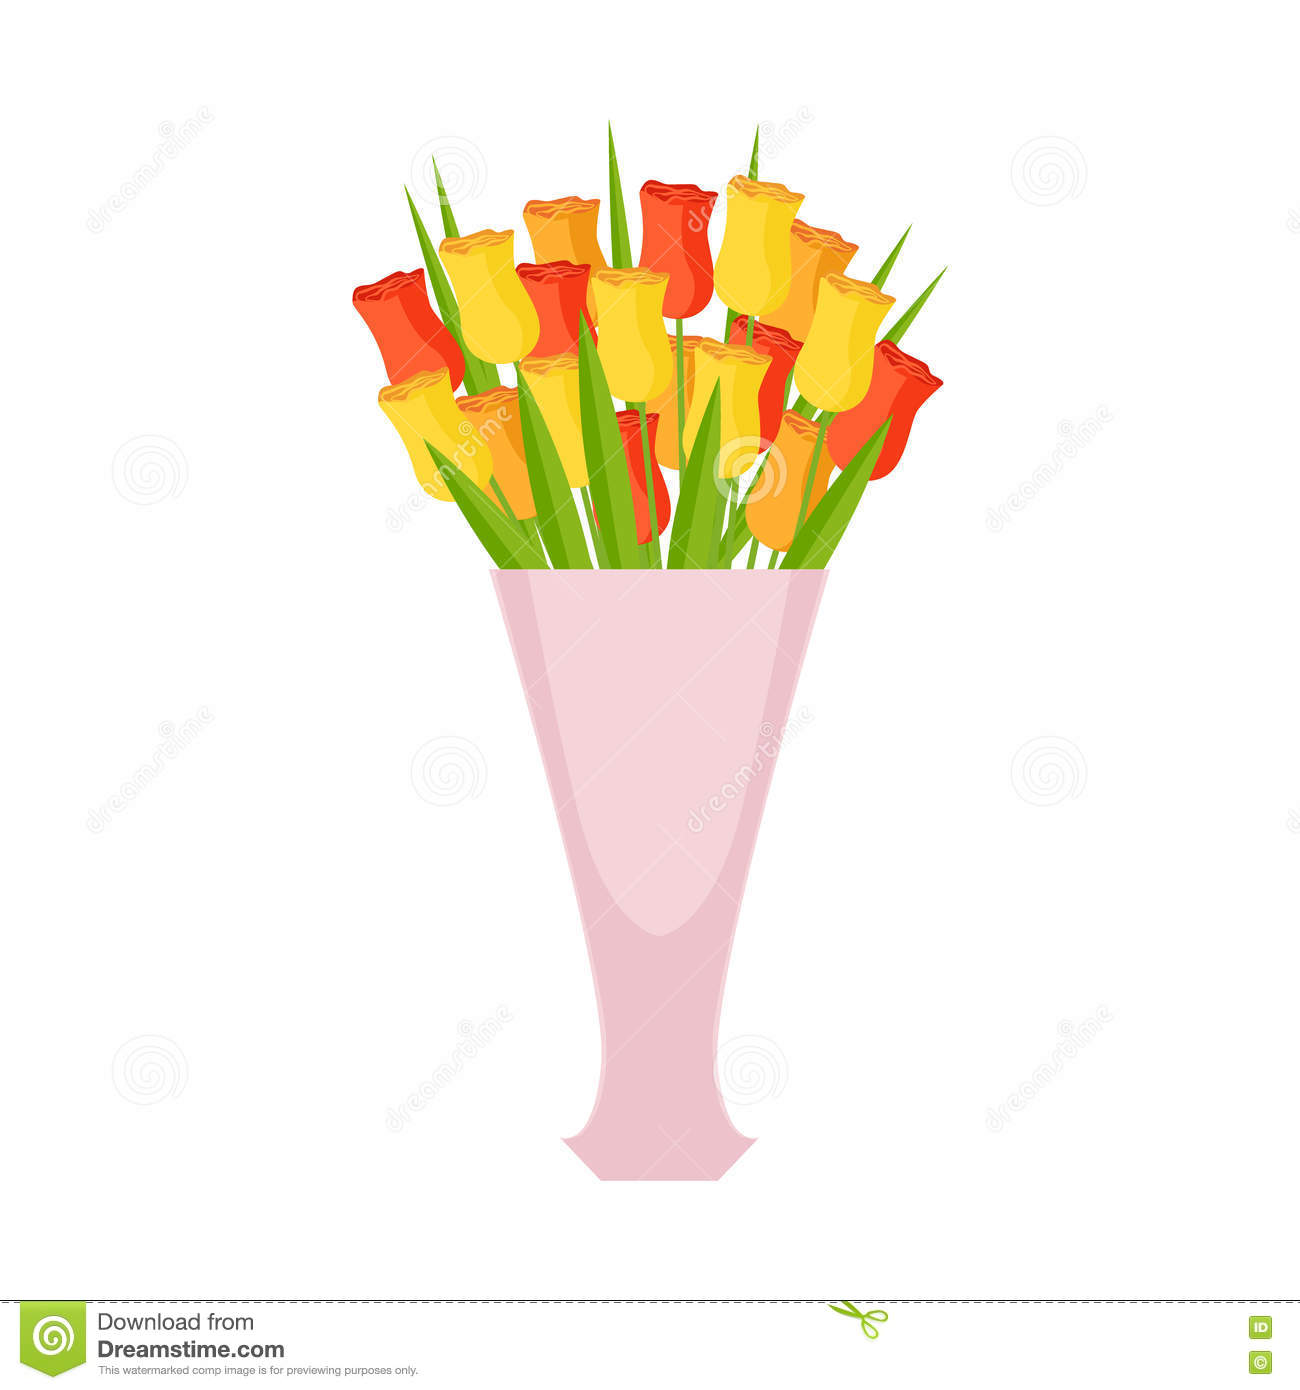 Tulips Flower Bouquet In Tall Vase Shop Decorative Plants Assortment Item Cartoon Vector